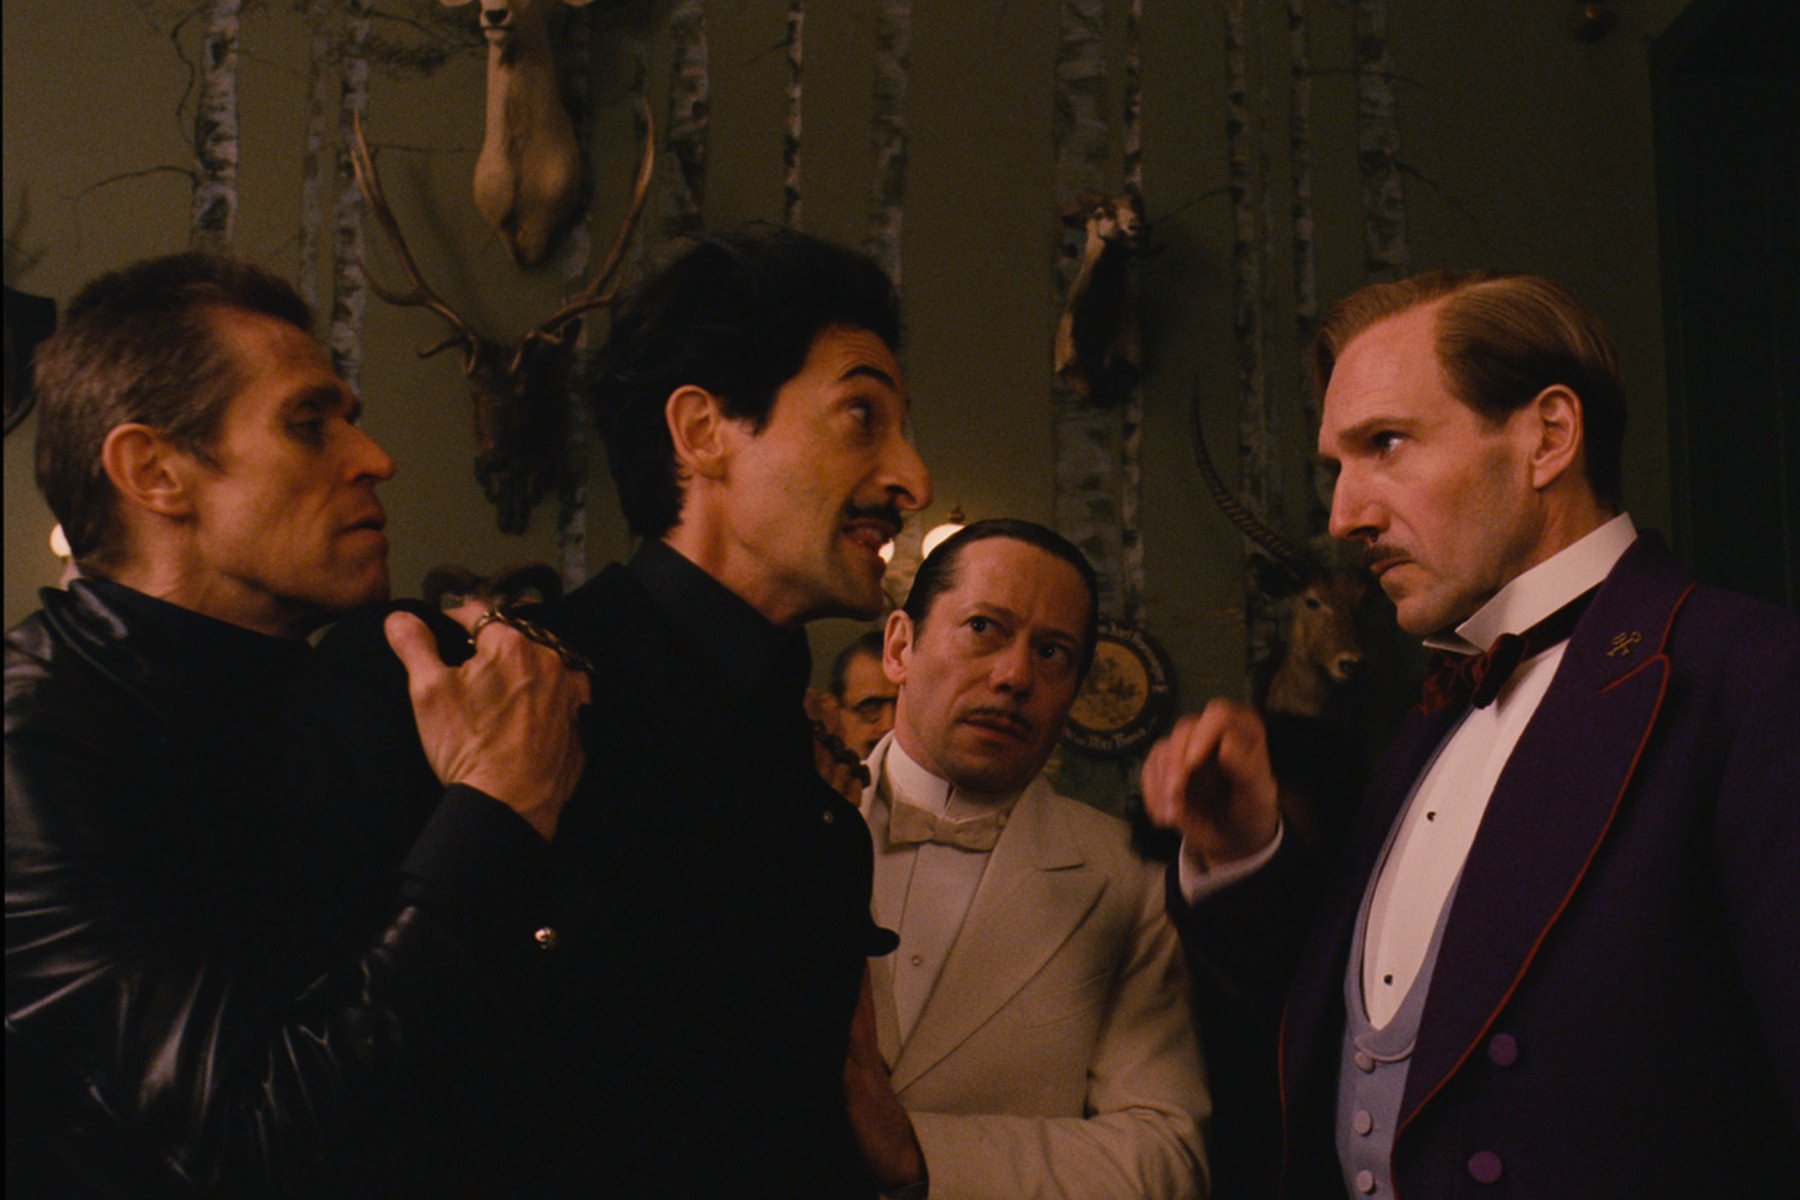 The grand budapest hotel ralph fiennes owen wilson